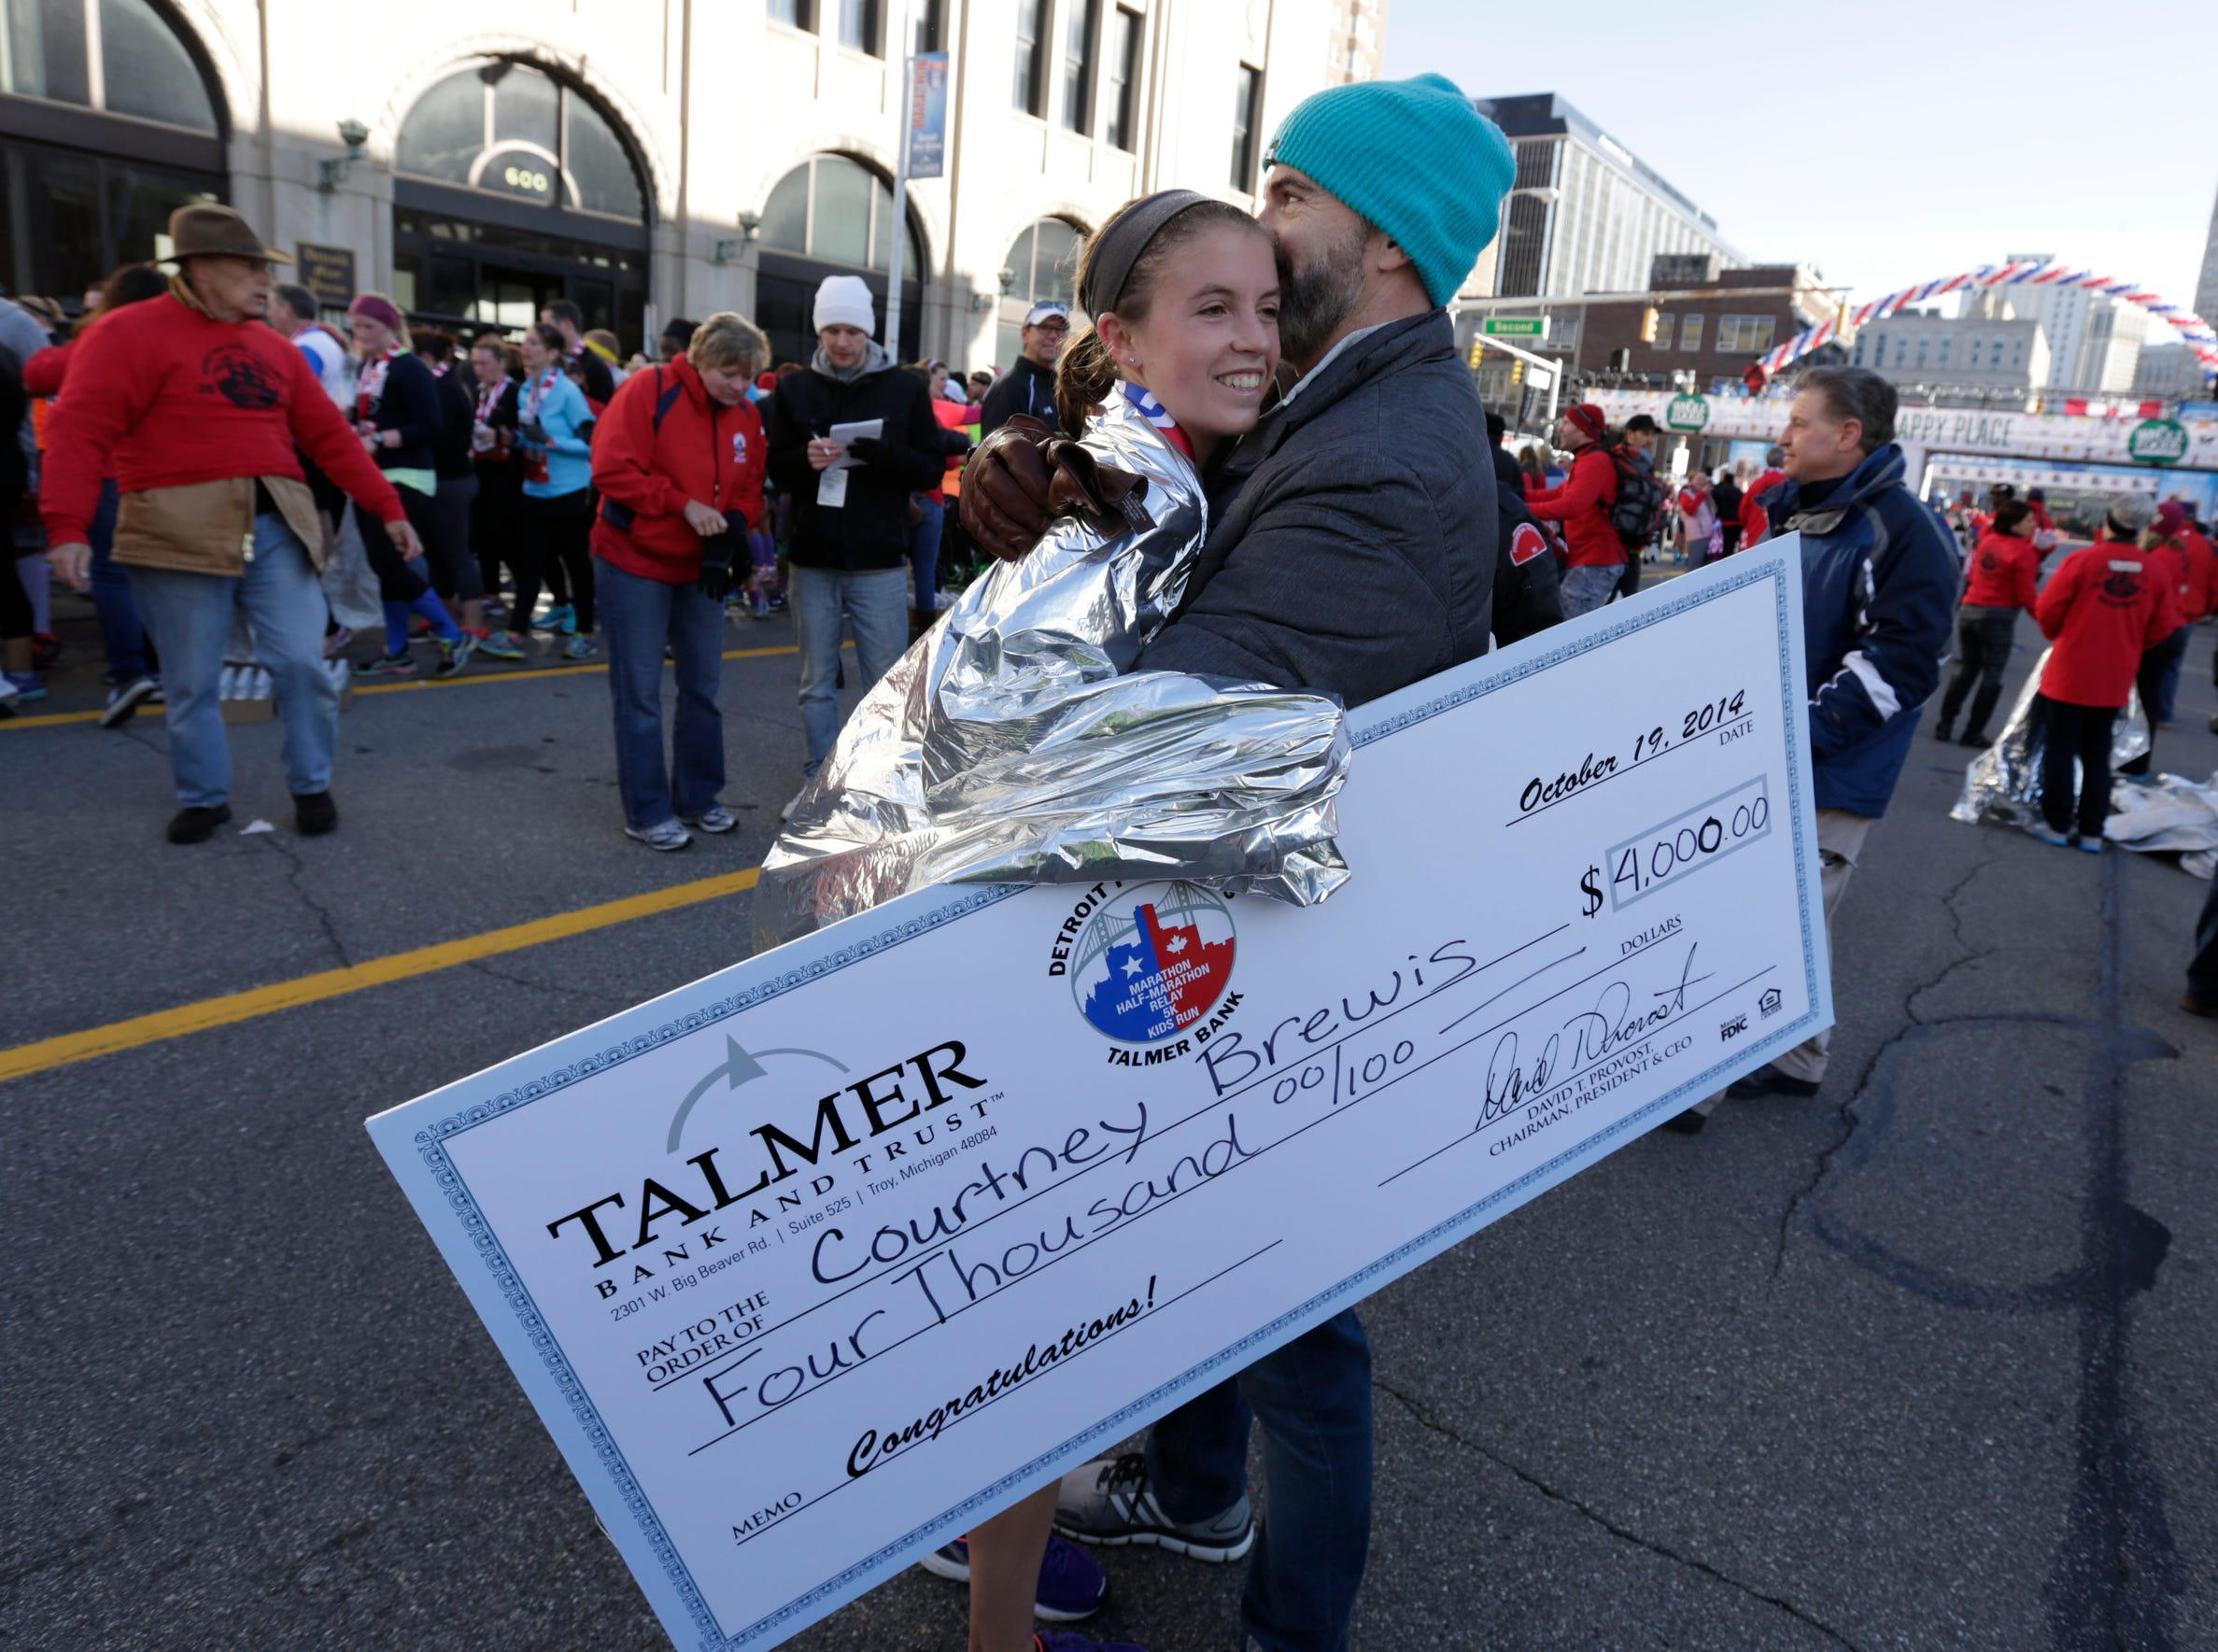 Courtney Brewis from Dearborn hugs her uncle Patrick Brewis after winning the women's division in the marathon during  the 37th Annual Detroit Free Press/Talmer Bank Marathon in Detroit on Sunday, Oct. 19, 2014.